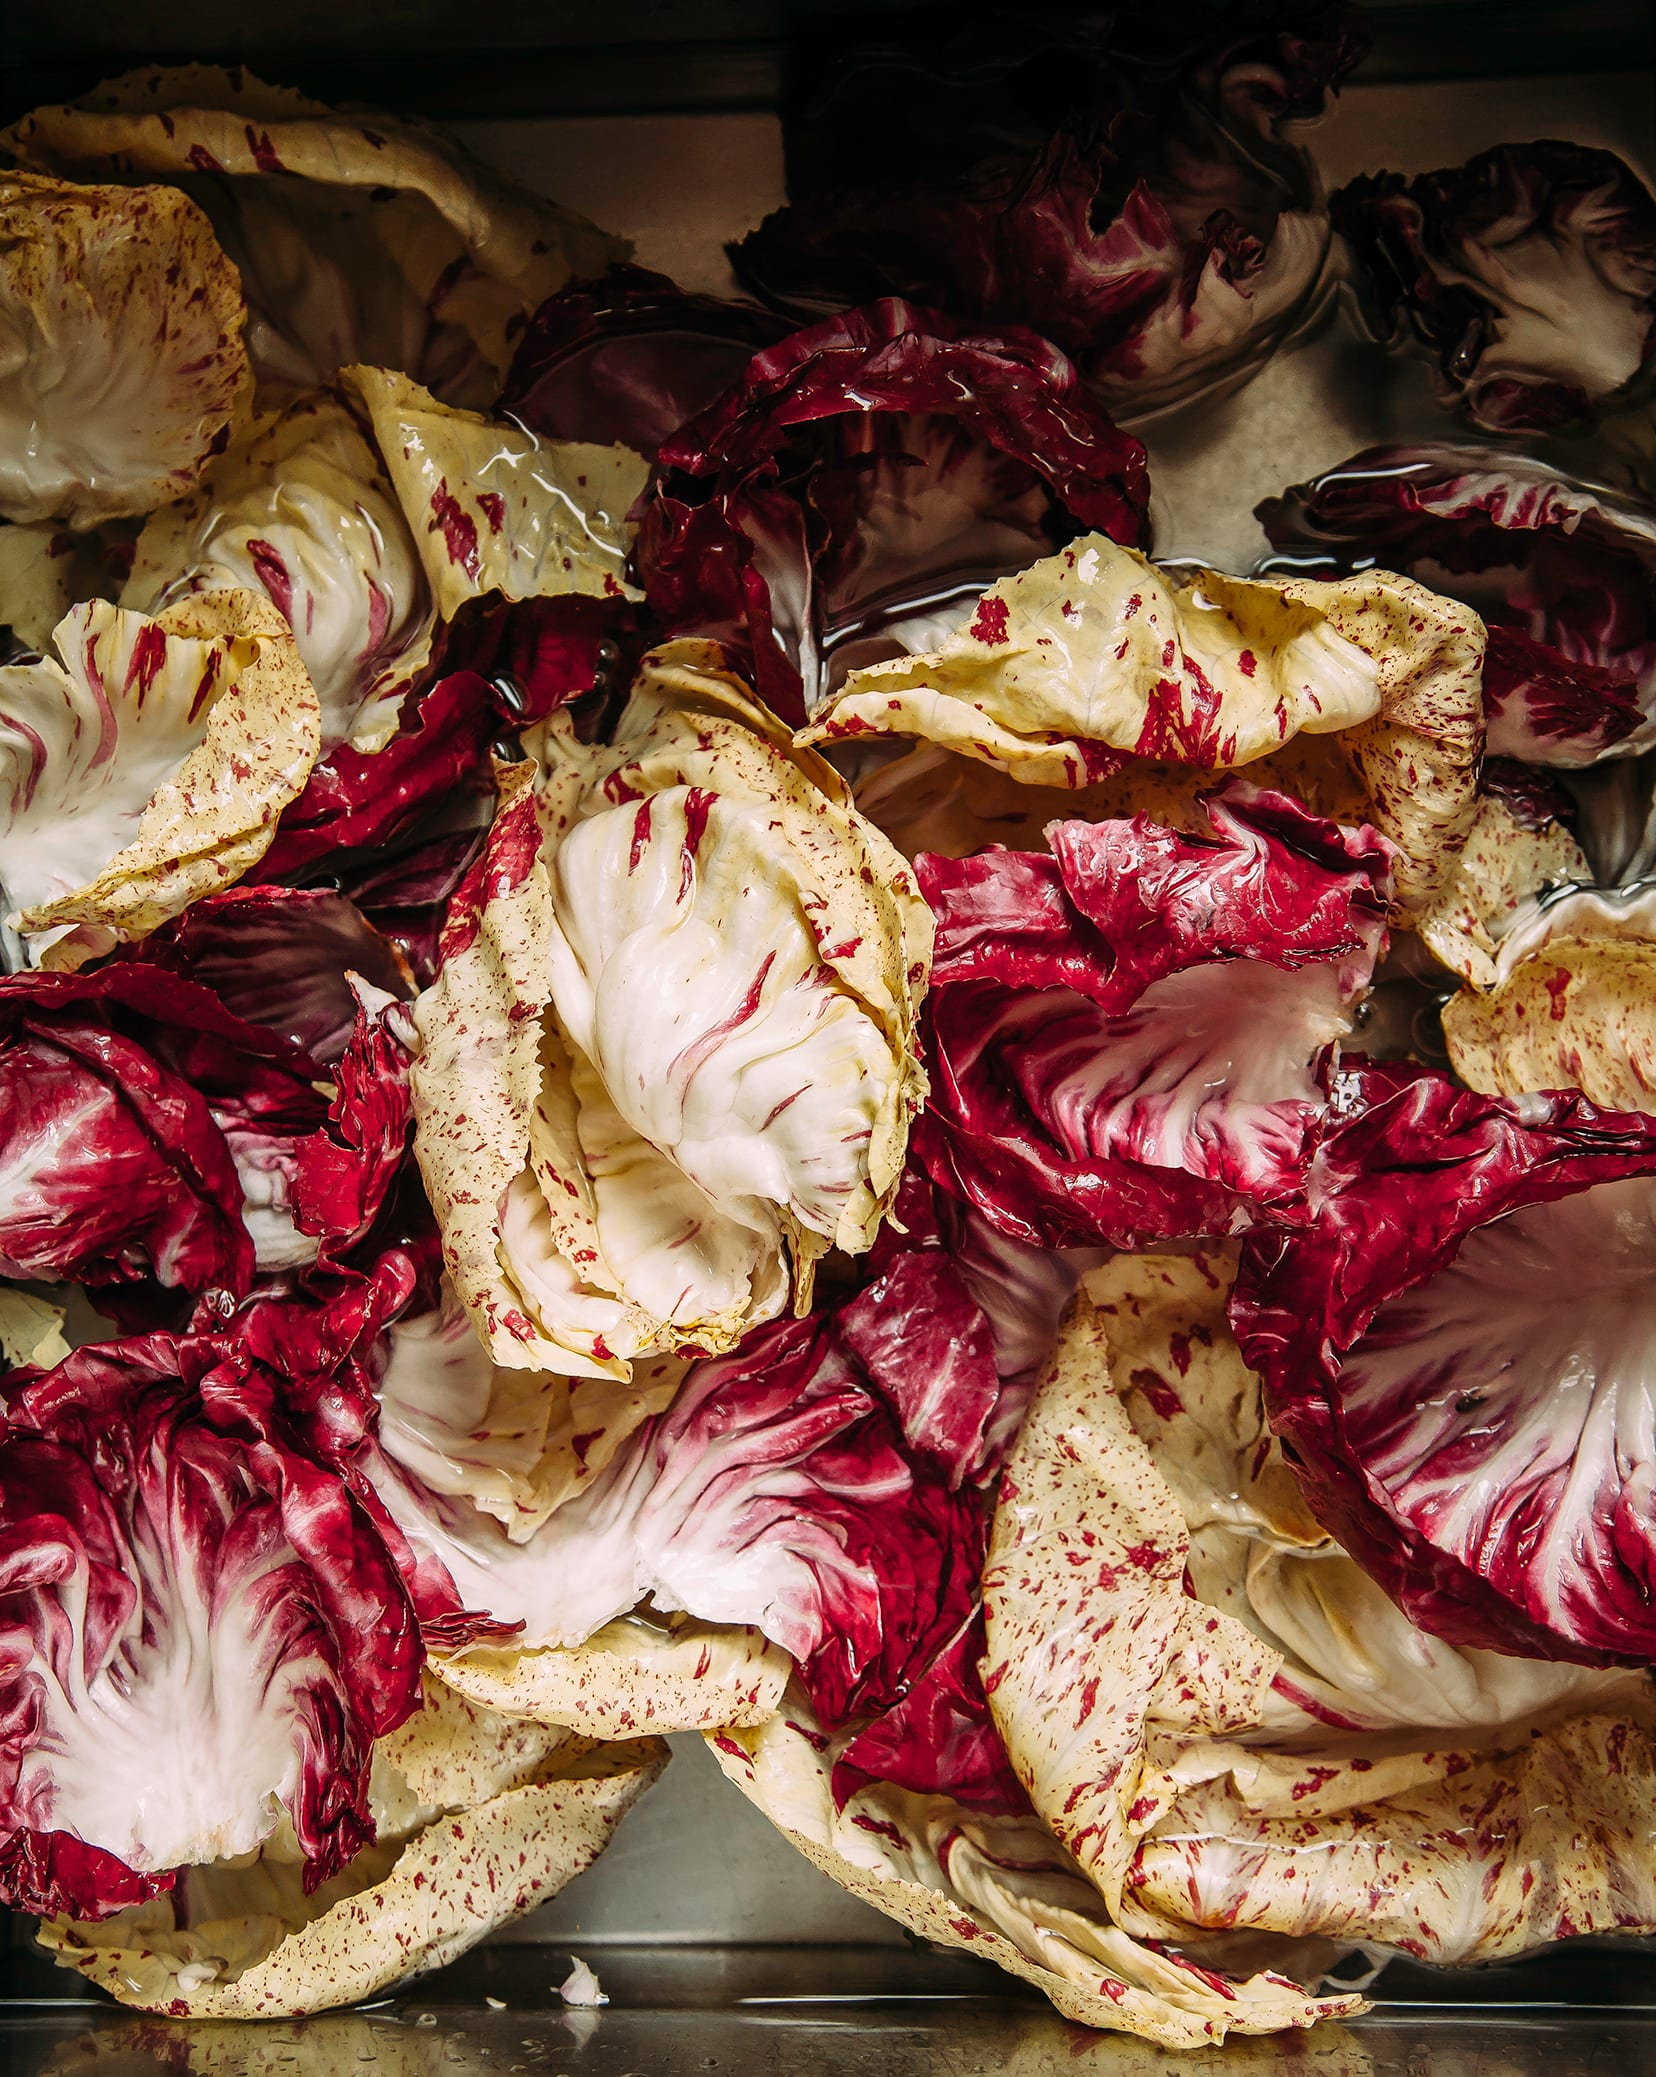 An overhead shot of different coloured radicchio leaves getting washed in a stainless sink.